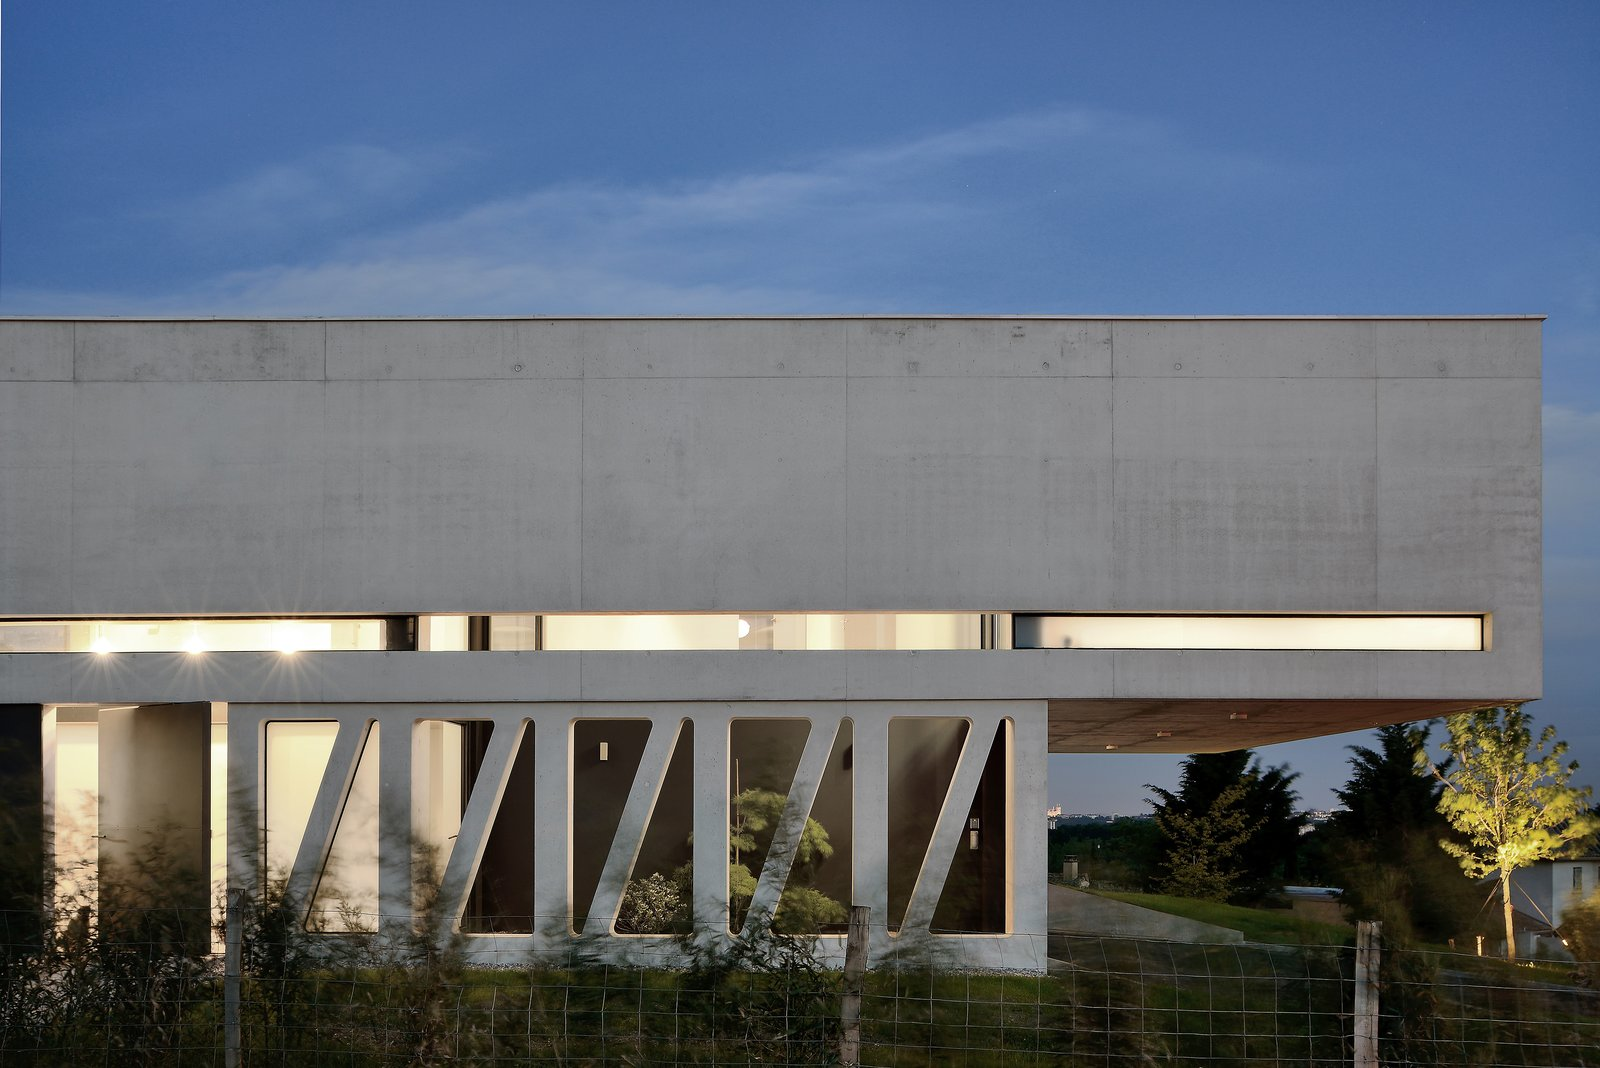 Photo 10 of 10 in Chipster Blister House by AUM Pierre Minassian - Dwell